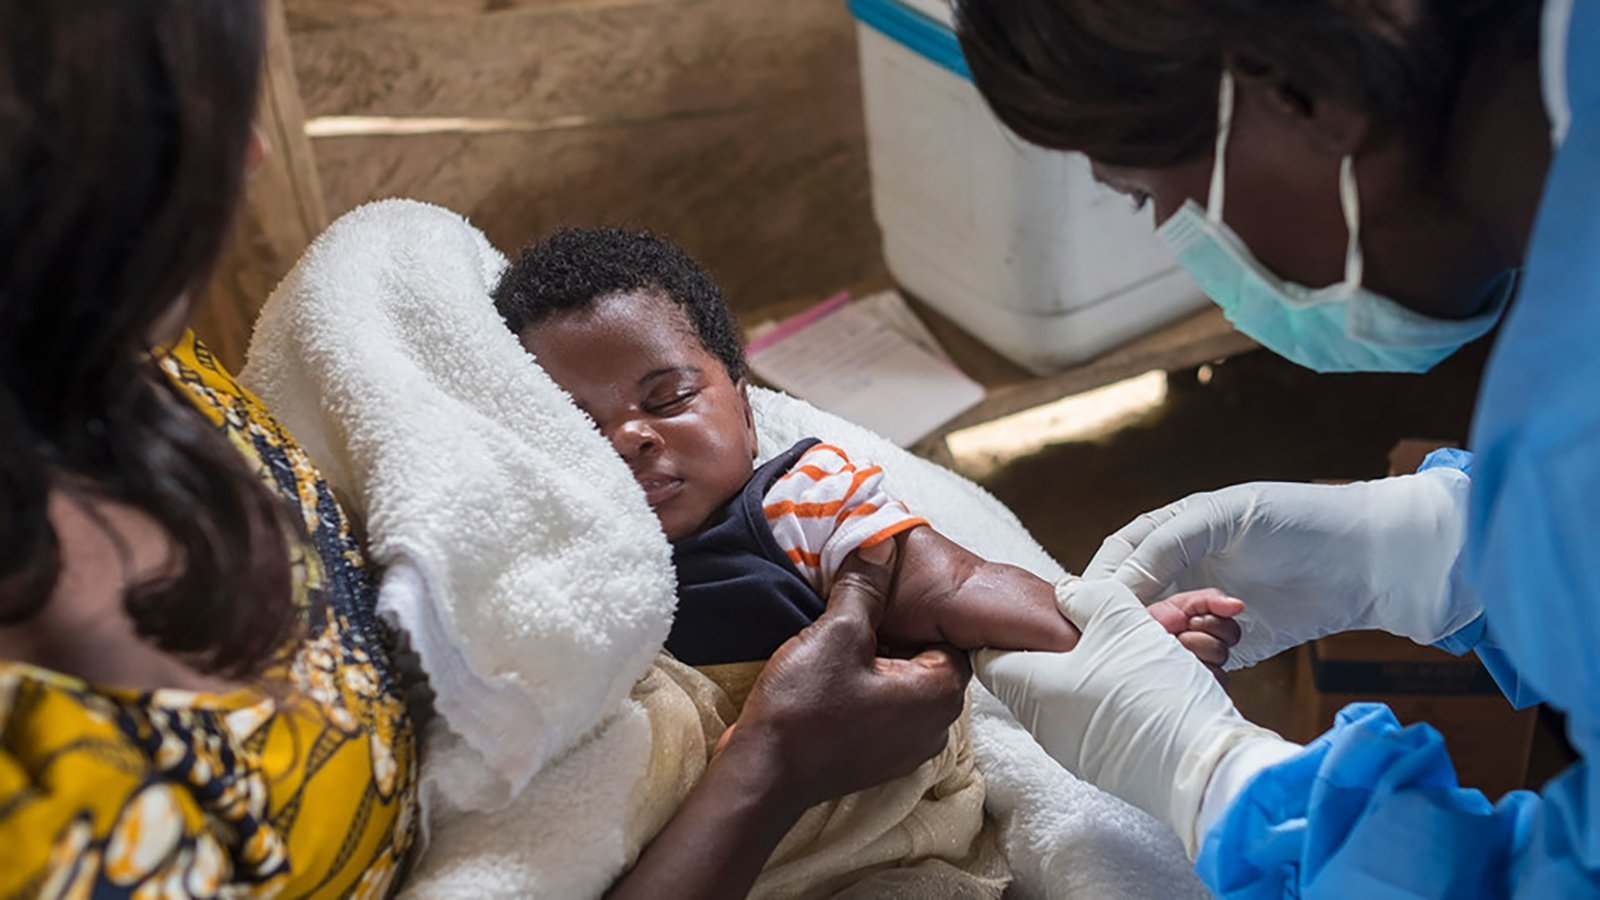 Measles has killed more than 6,000 people in the Democratic Republic of Congo, the World Health Organization has said. (Credit: Thomas Nybo/Unicef)